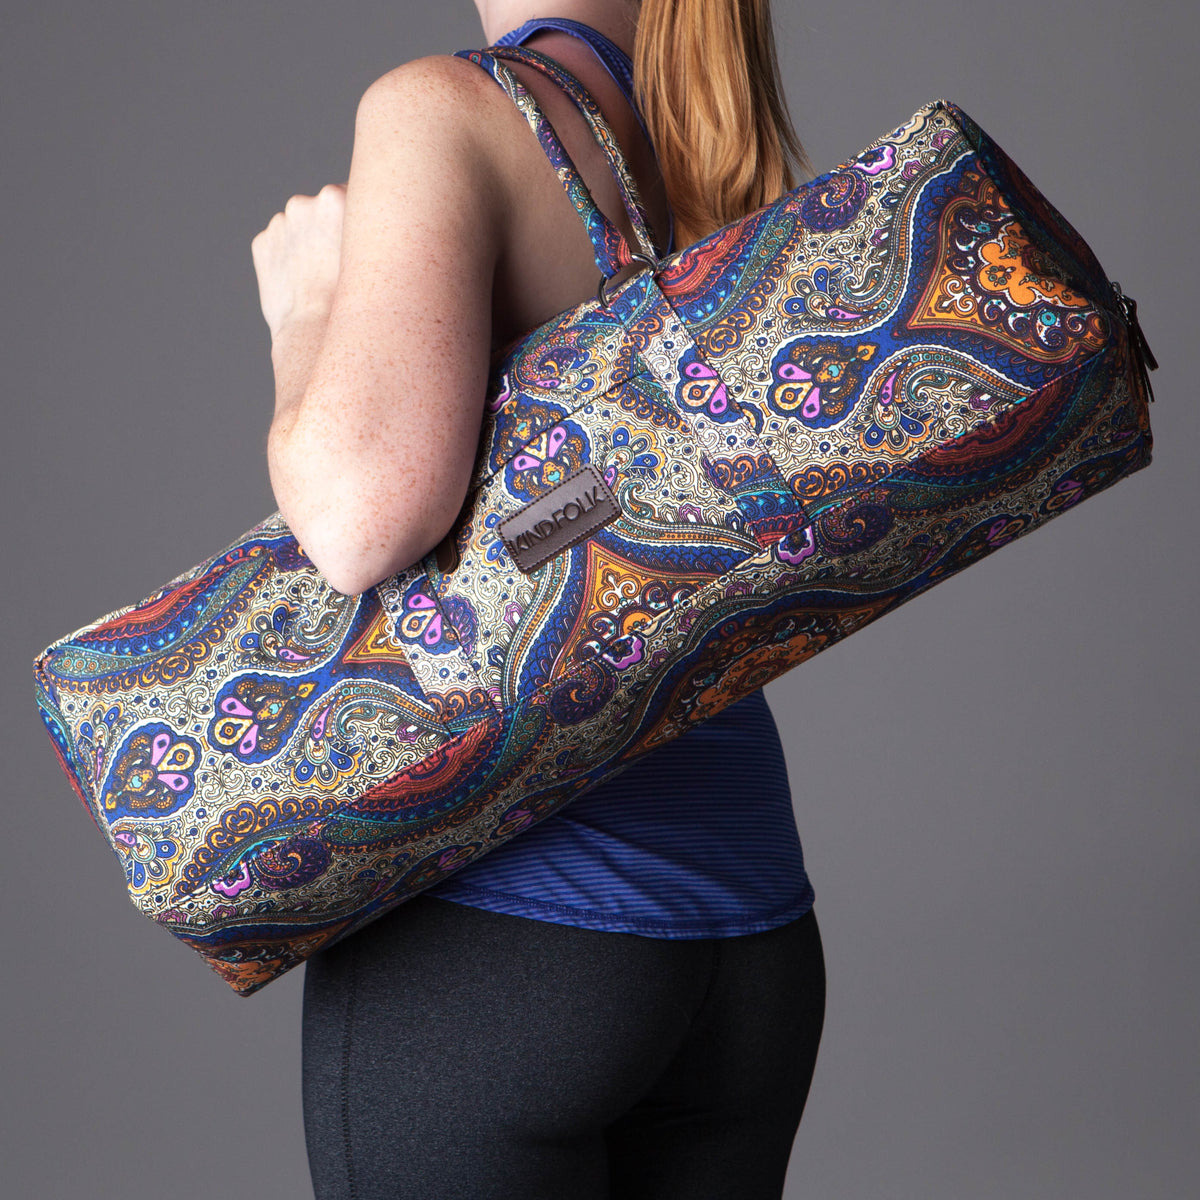 Patterned Yoga Mat Duffel Bag - Kindfolk Athletics